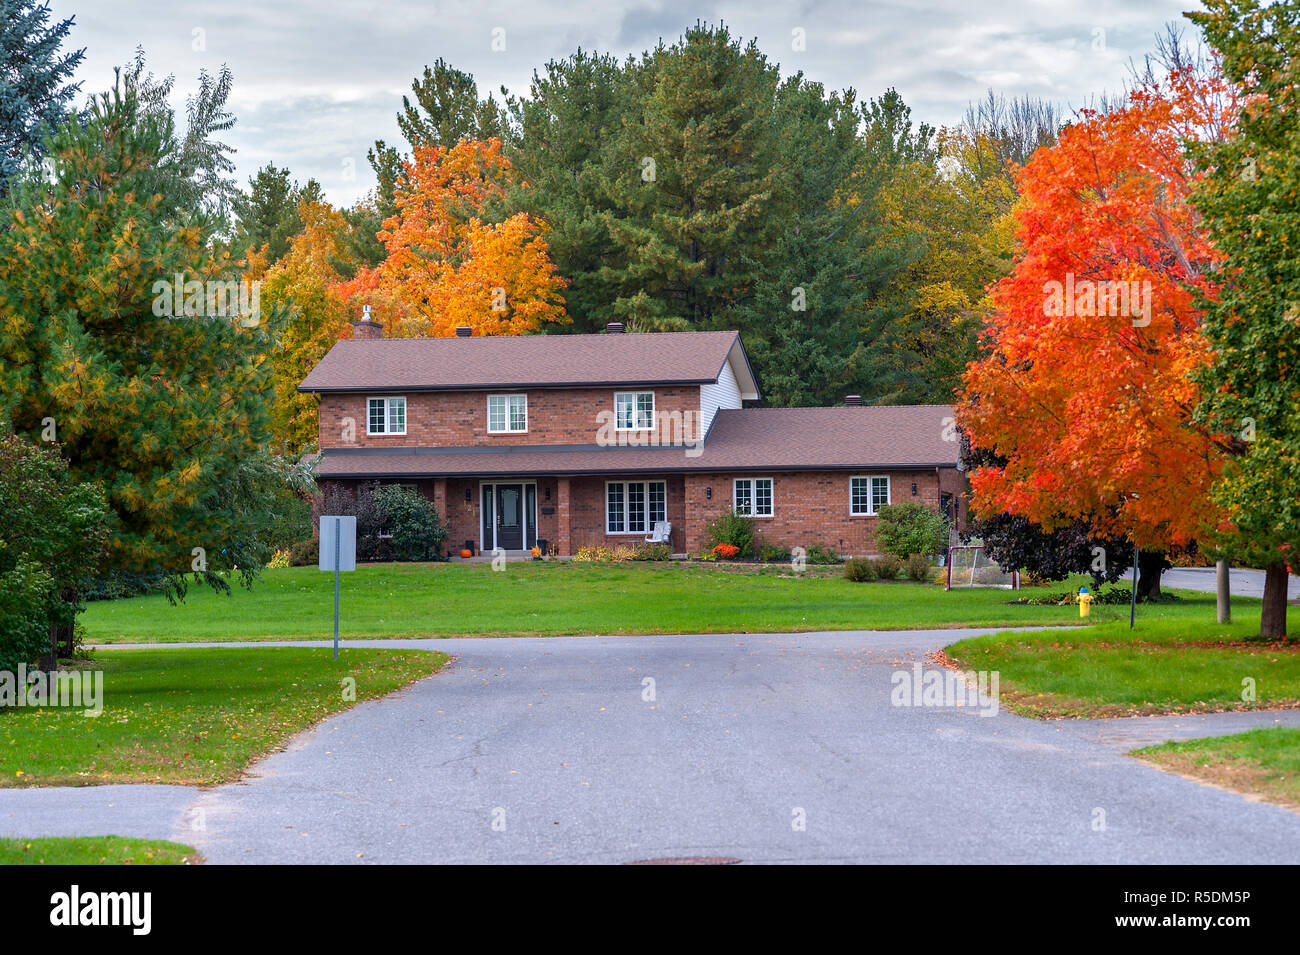 Brilliant House Brick House And Maple Trees In Brilliant Color Stock Photo